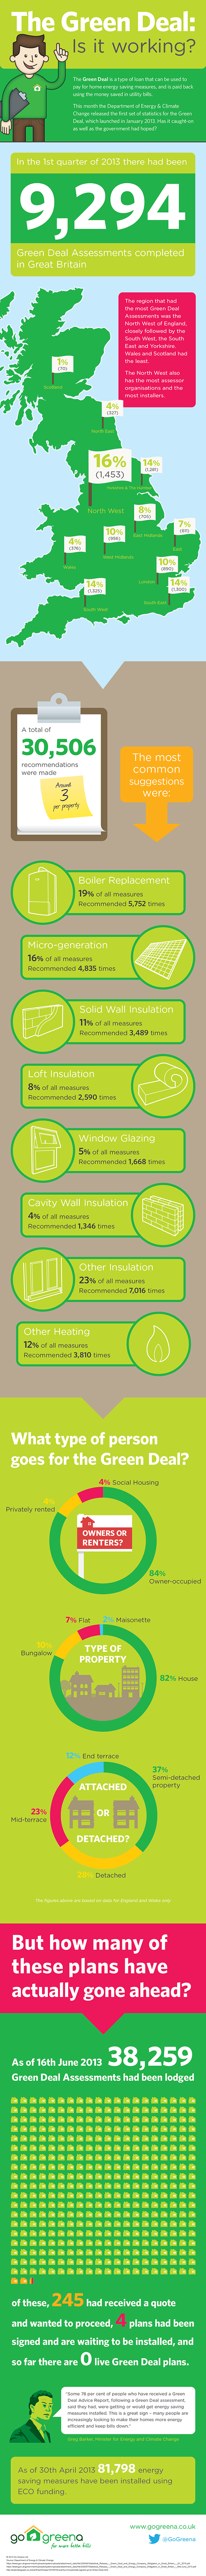 The Green Deal: Is it working? (infographic)